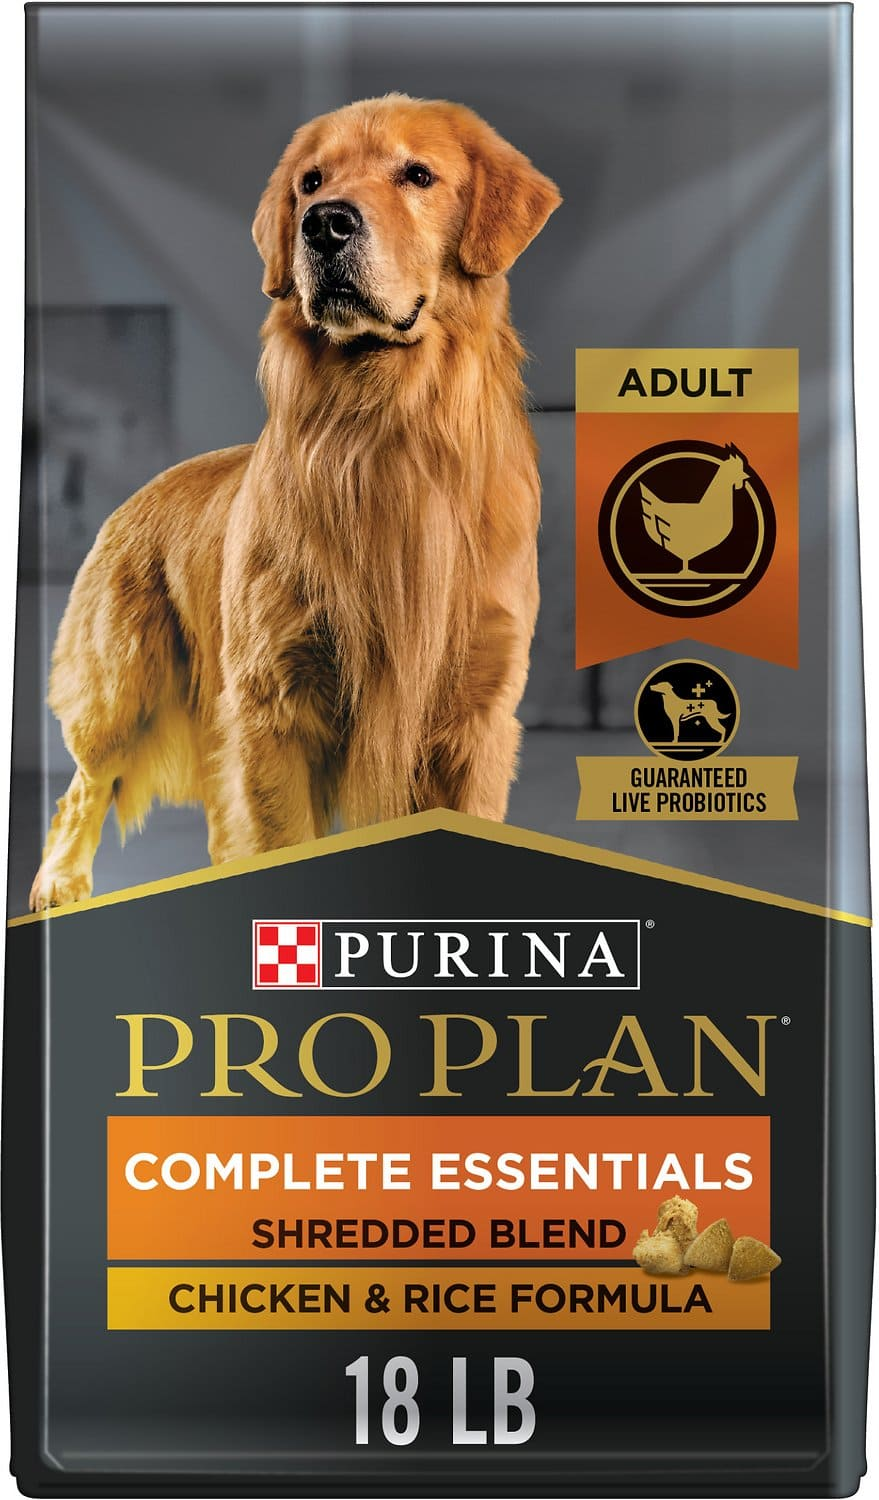 Purina Pro Plan Adult Complete Essentials Shredded Blend Formula for Dogs 18 lbs Chicken & Rice 1